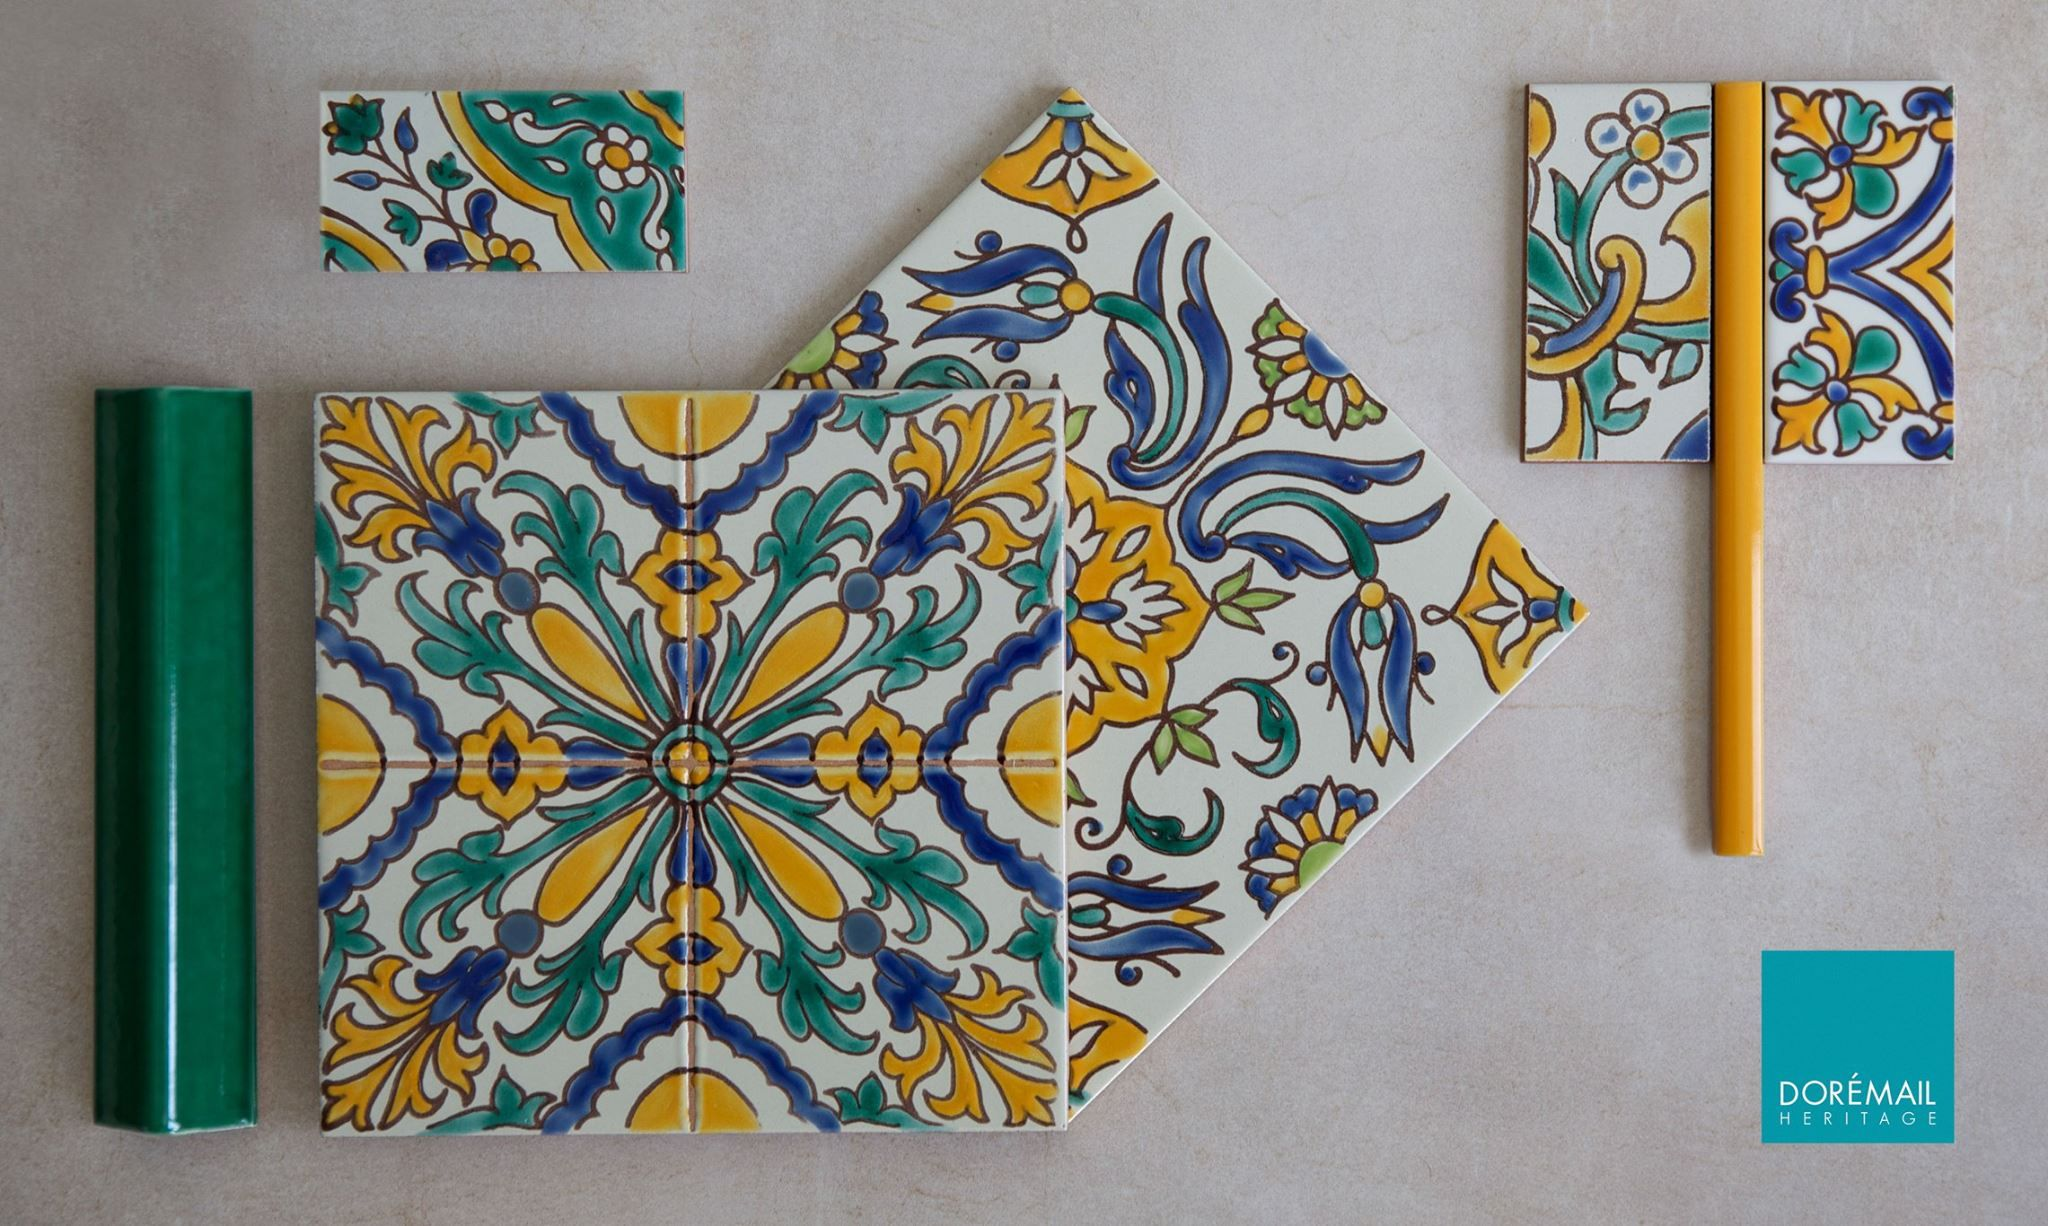 Doremailmoodboard Les Tunisiennes A L Honneur La Richesse Du Patrimoine Tunisien Avec Les Carreaux Decores Main Constanti Carreaux Ceramique Faience Carreau